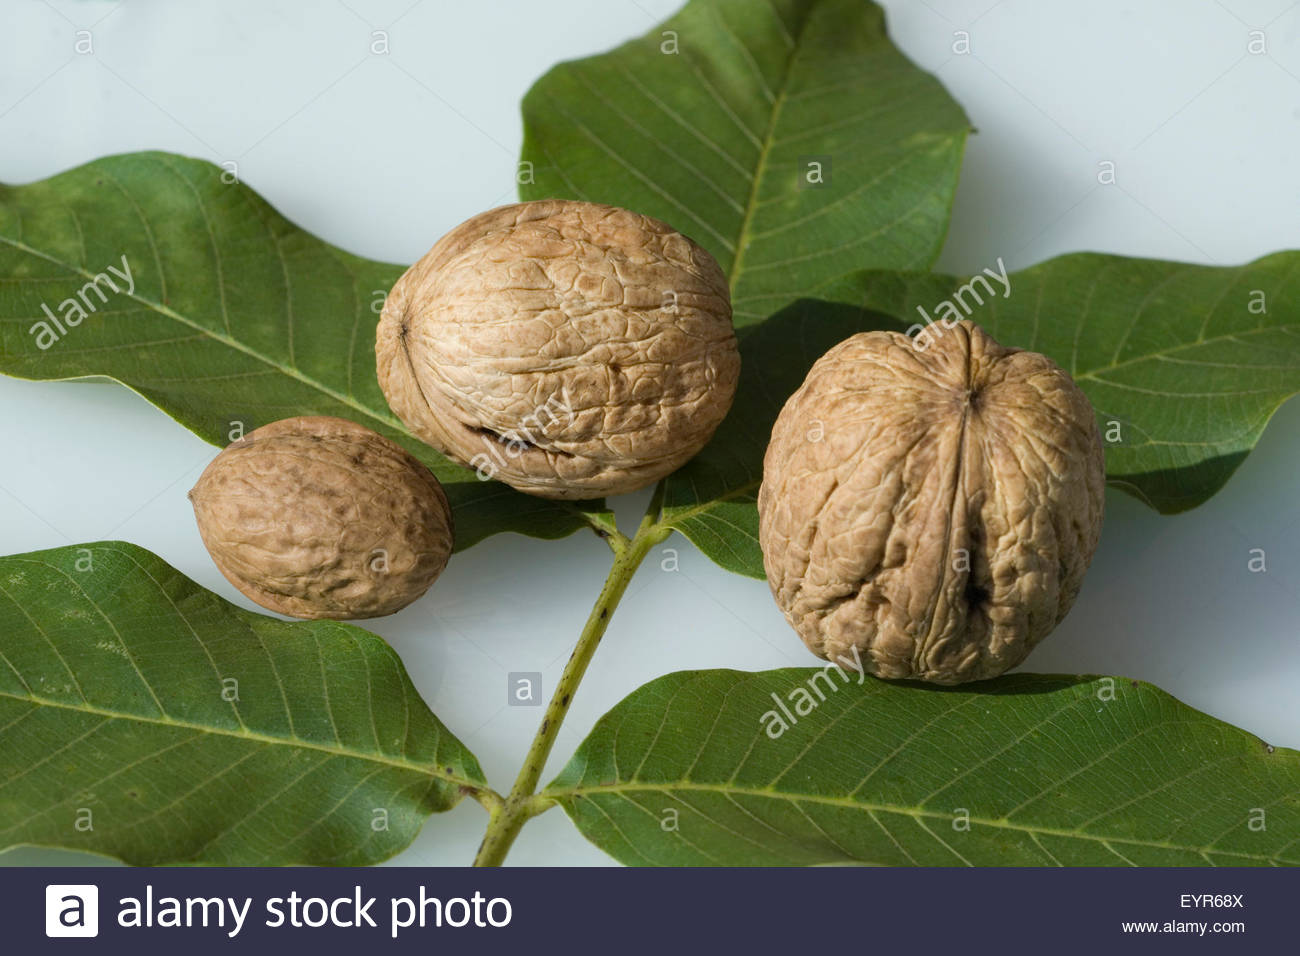 Walnuesse, Walnuss, Walnussbaum, Juglans Regia, Nuss Stock Photo.